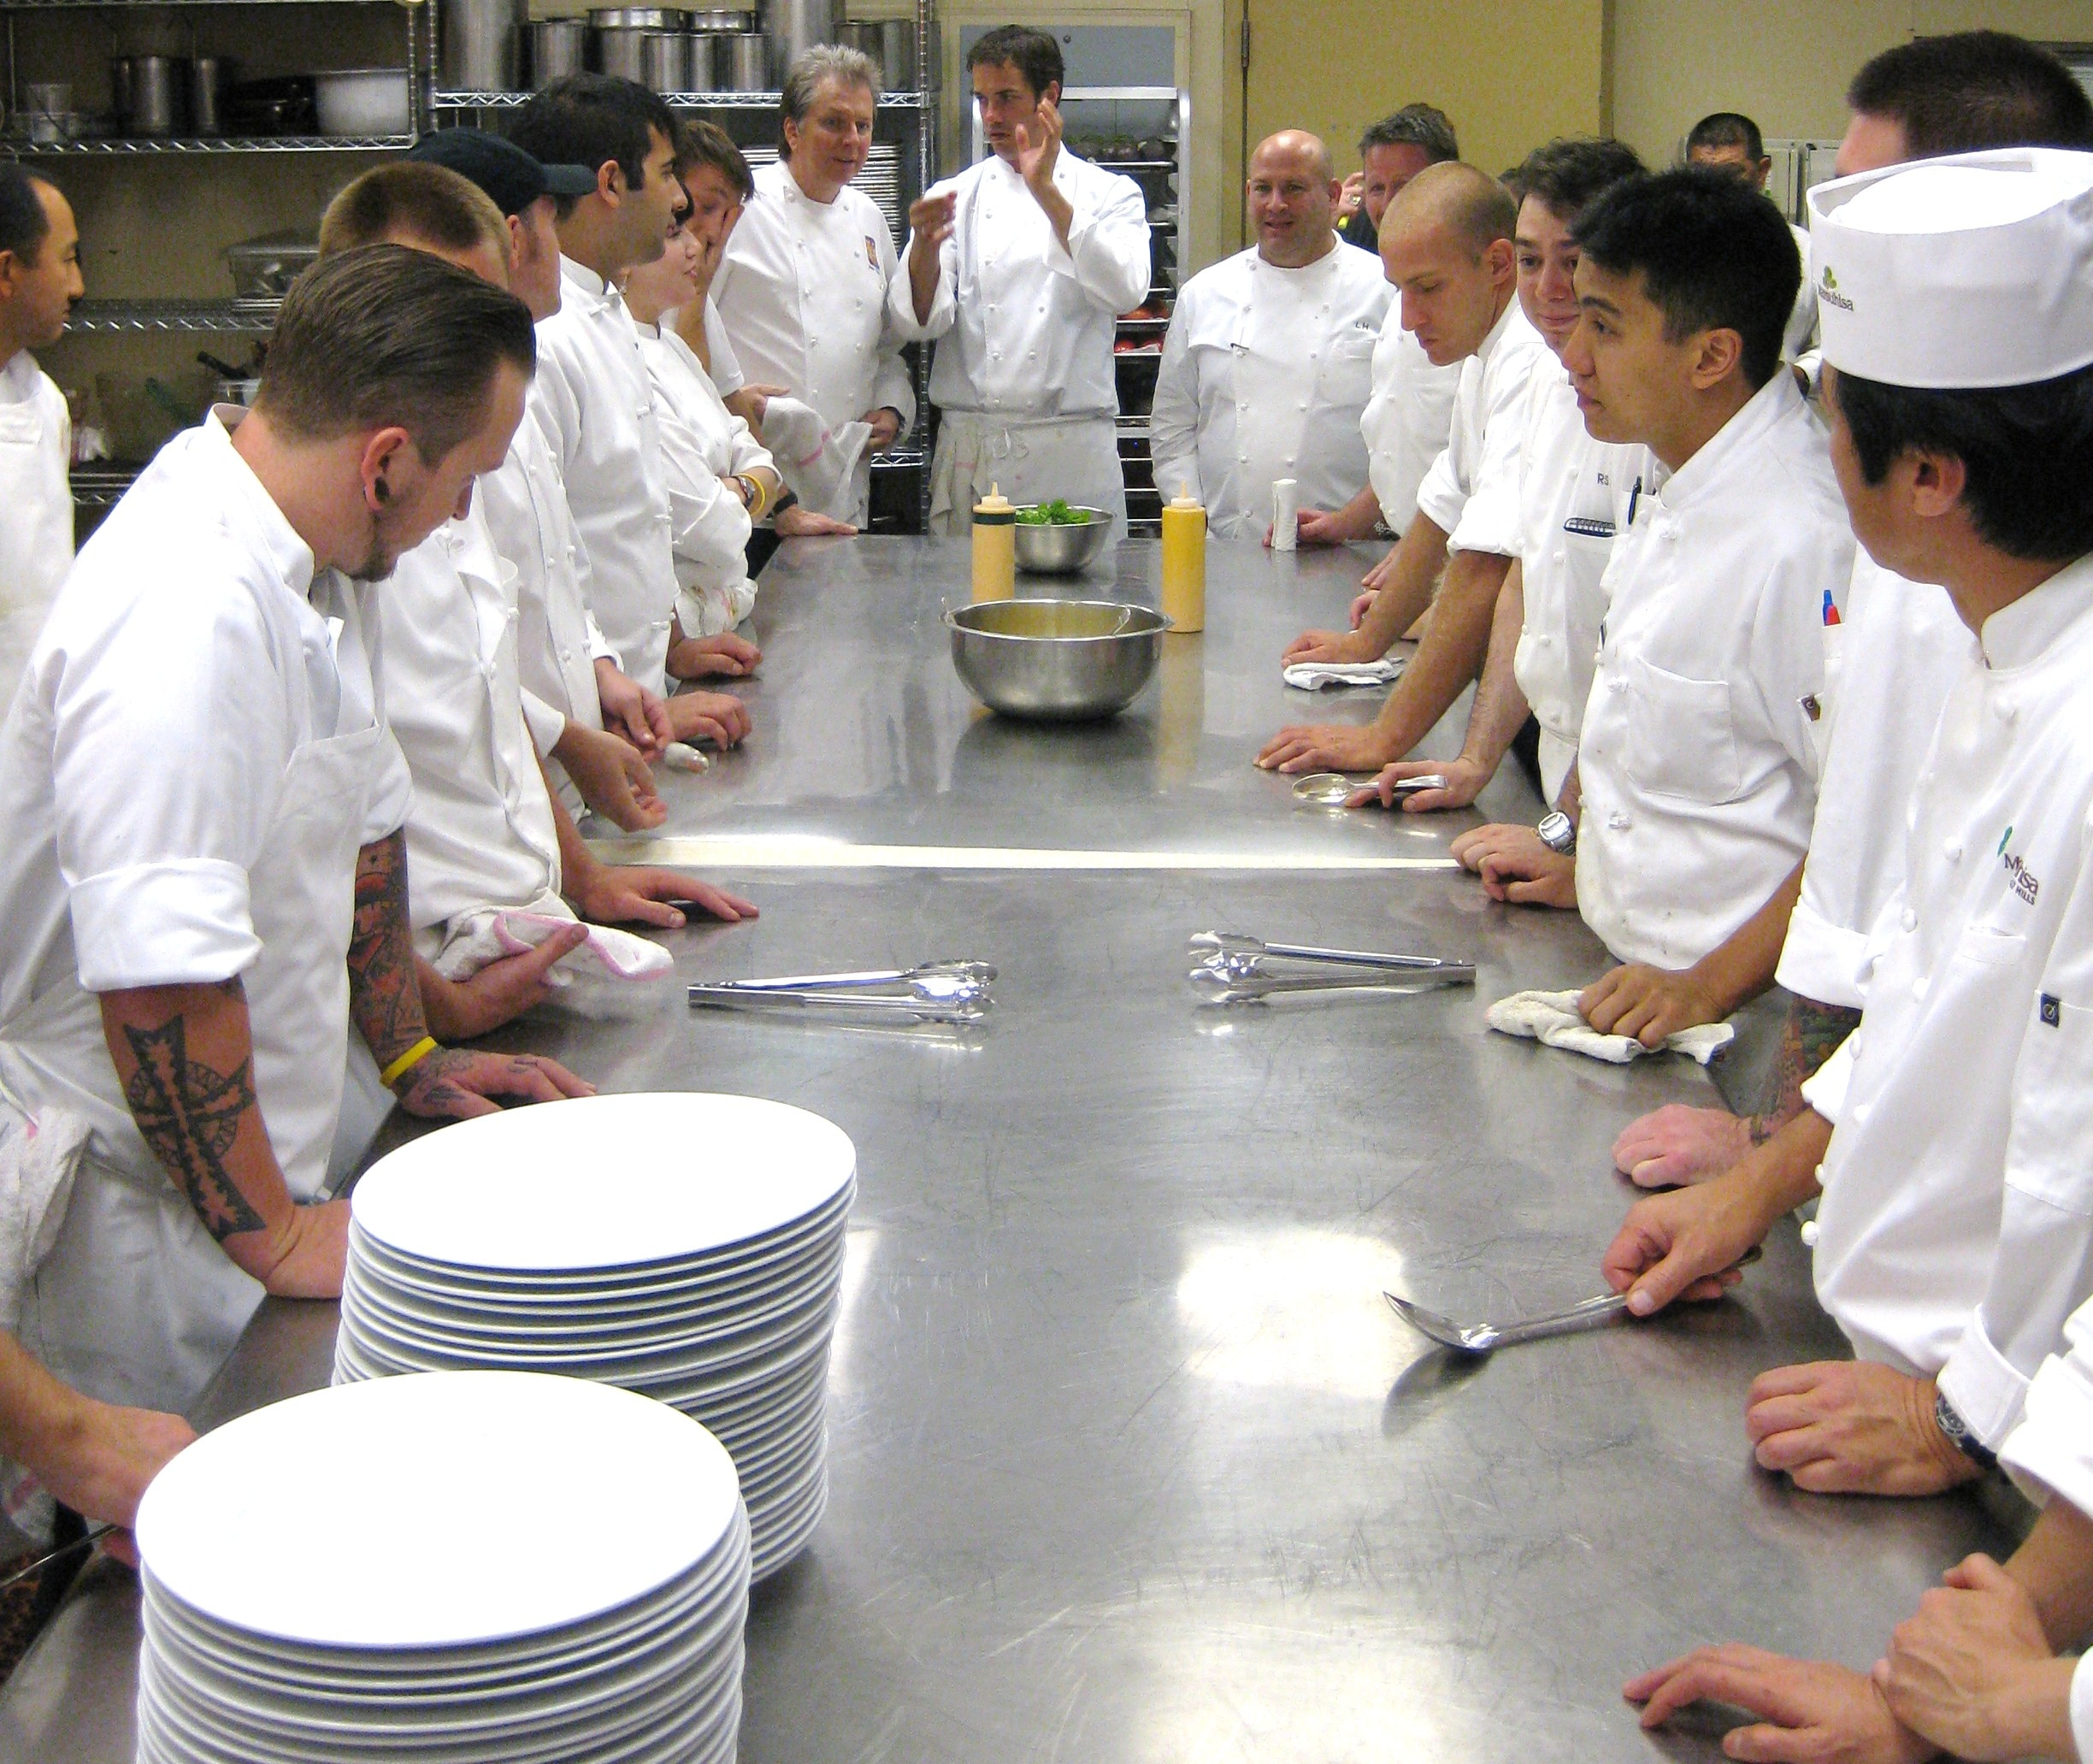 Chefs in the kitchen of Spago Beverly Hills waiting for the next course to plate